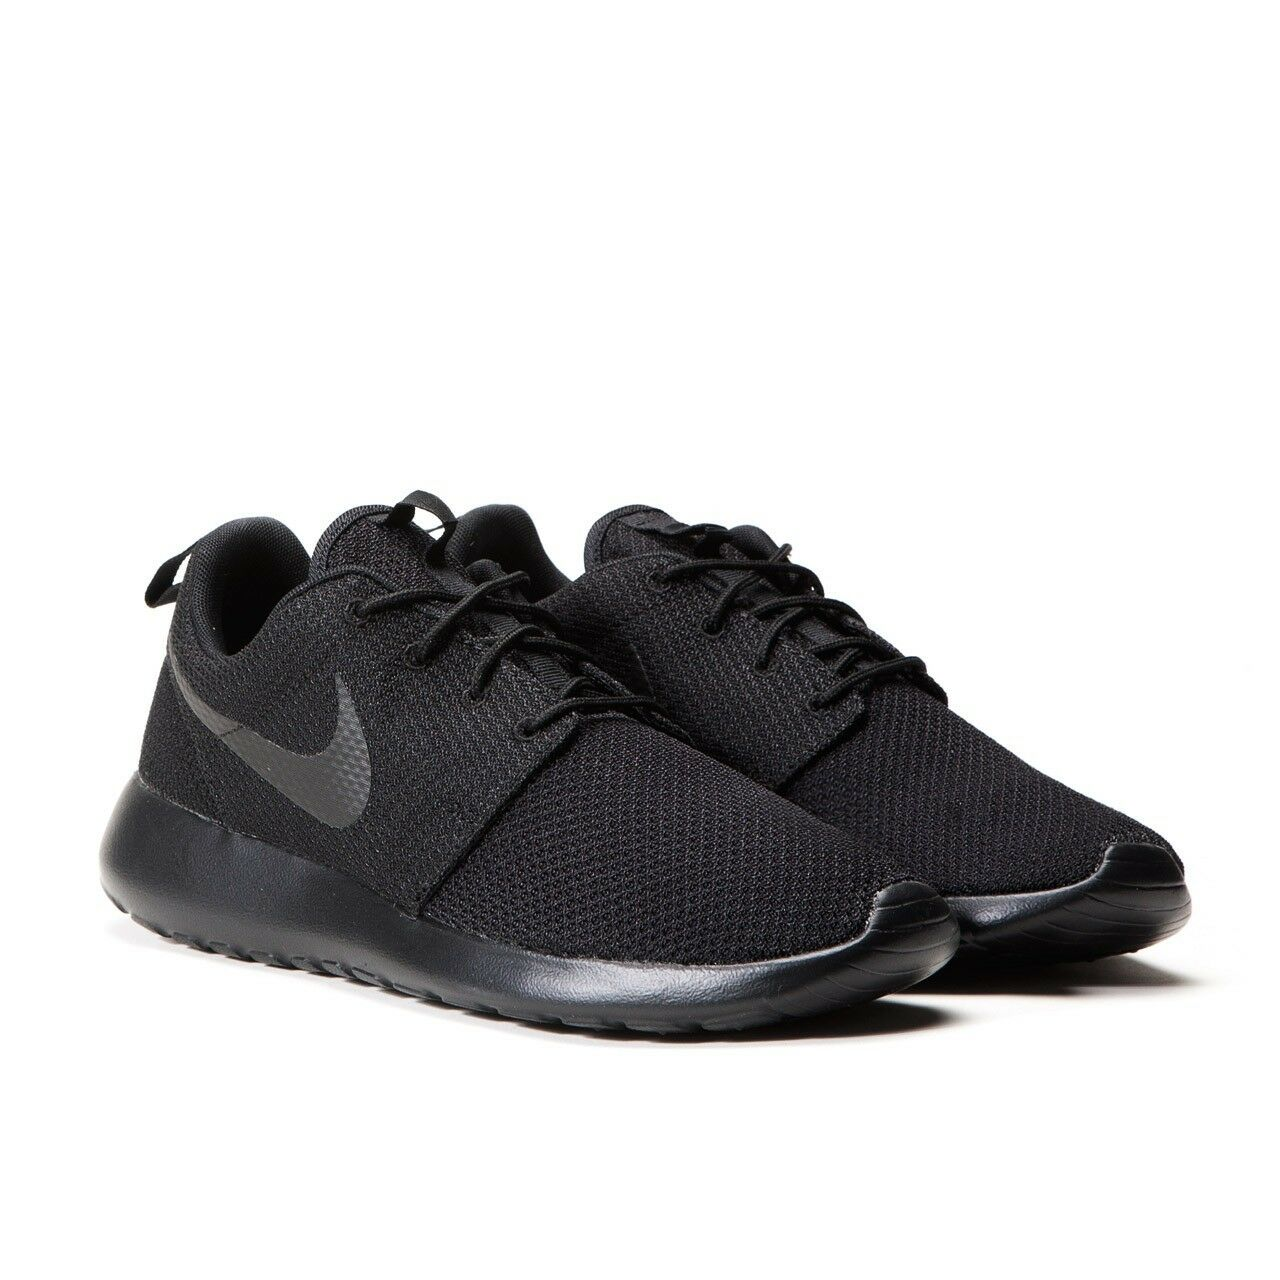 511881-026 Nike Roshe One 1 courir Roshecourir chaussures Triple noir fonctionnement Trainers chaussures Roshecourir DS 85aa94